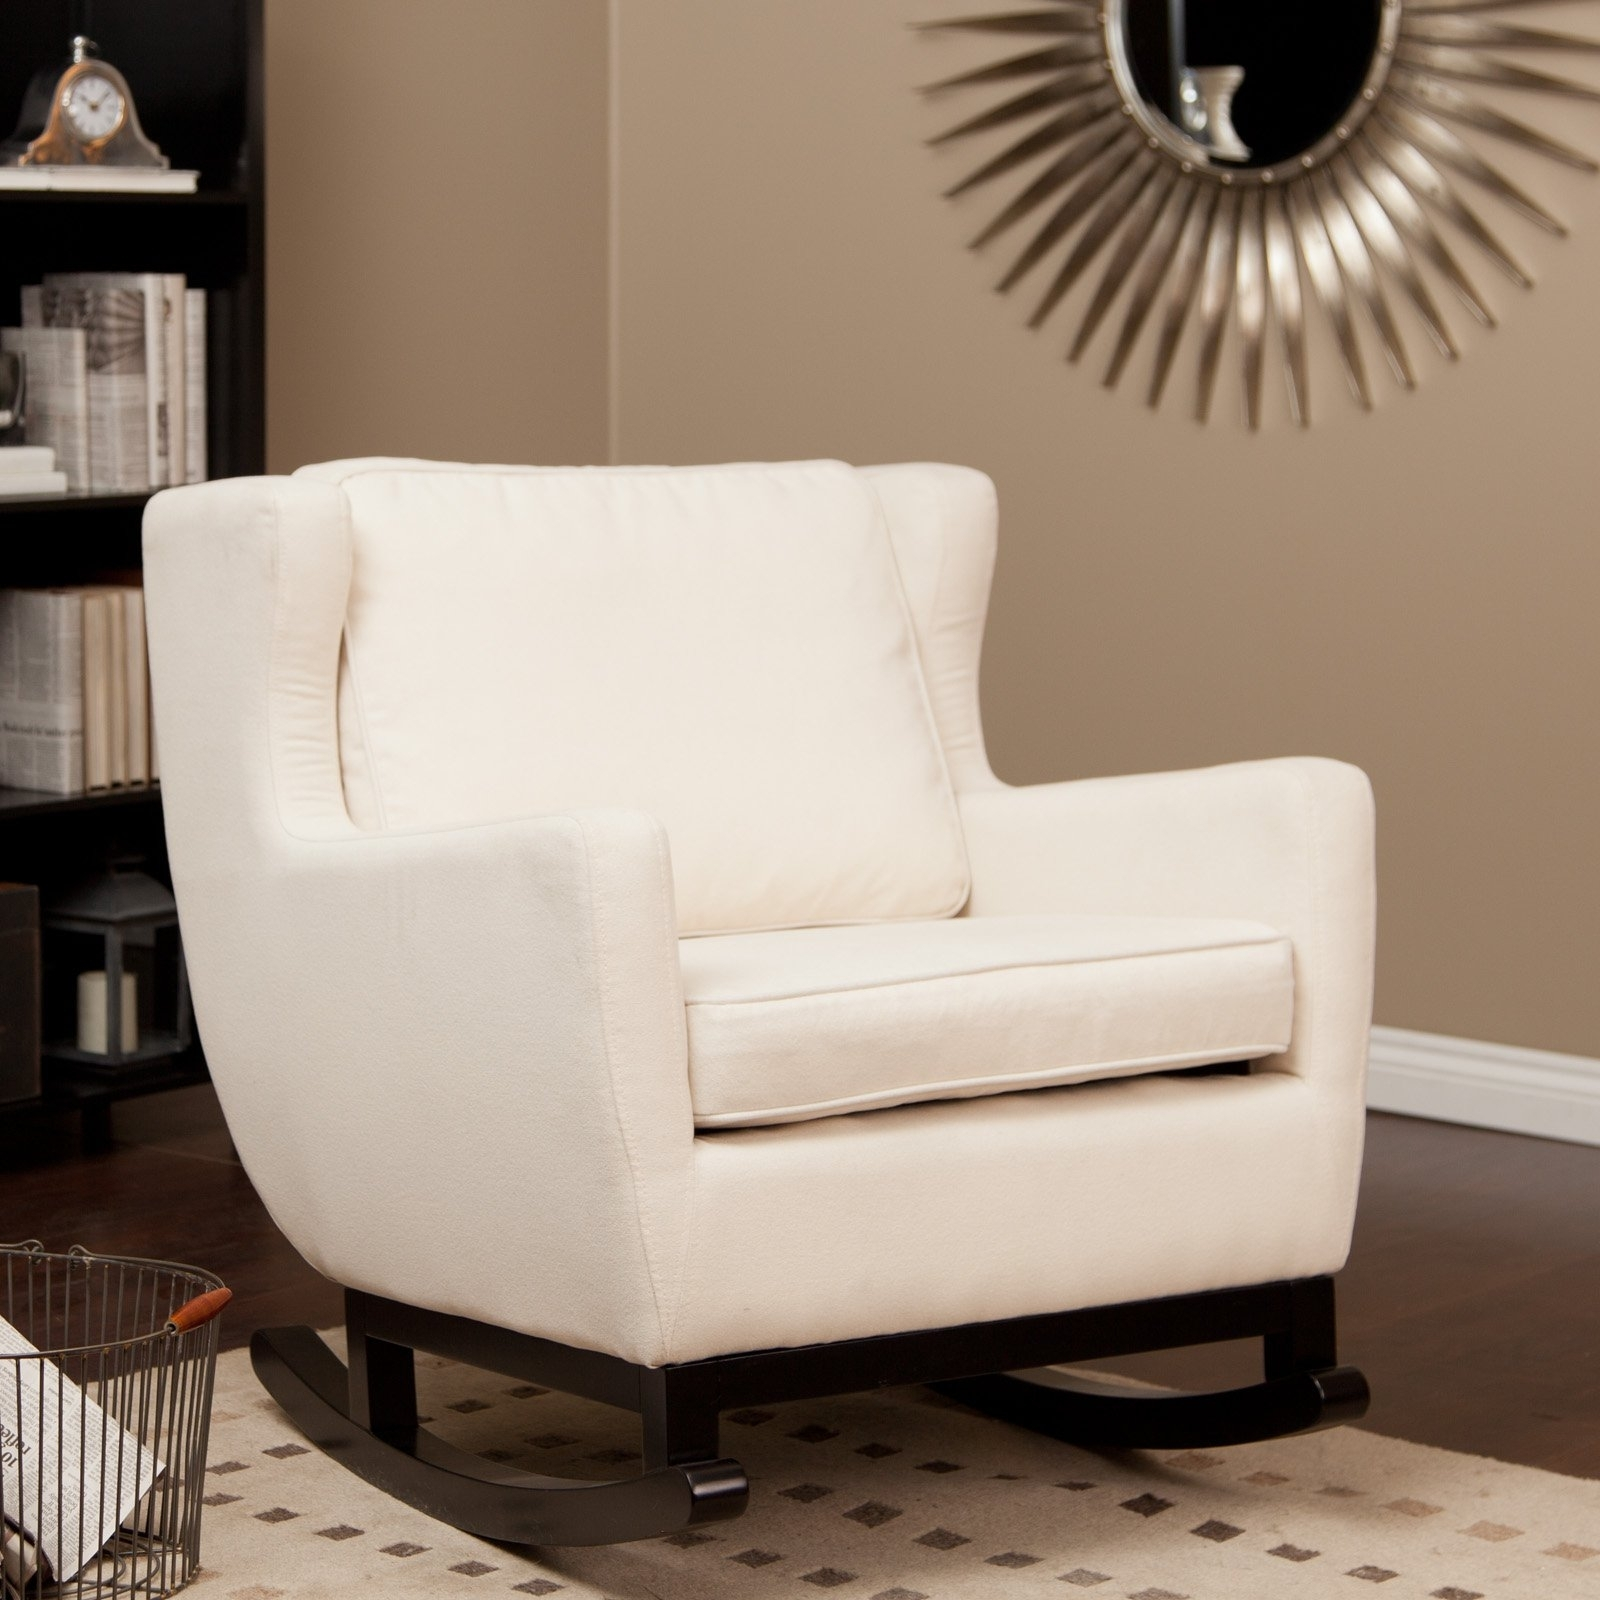 Chair | Boston Rocking Chair White Glider Rocker Comfortable Rocking With Regard To Upholstered Rocking Chairs (View 11 of 15)